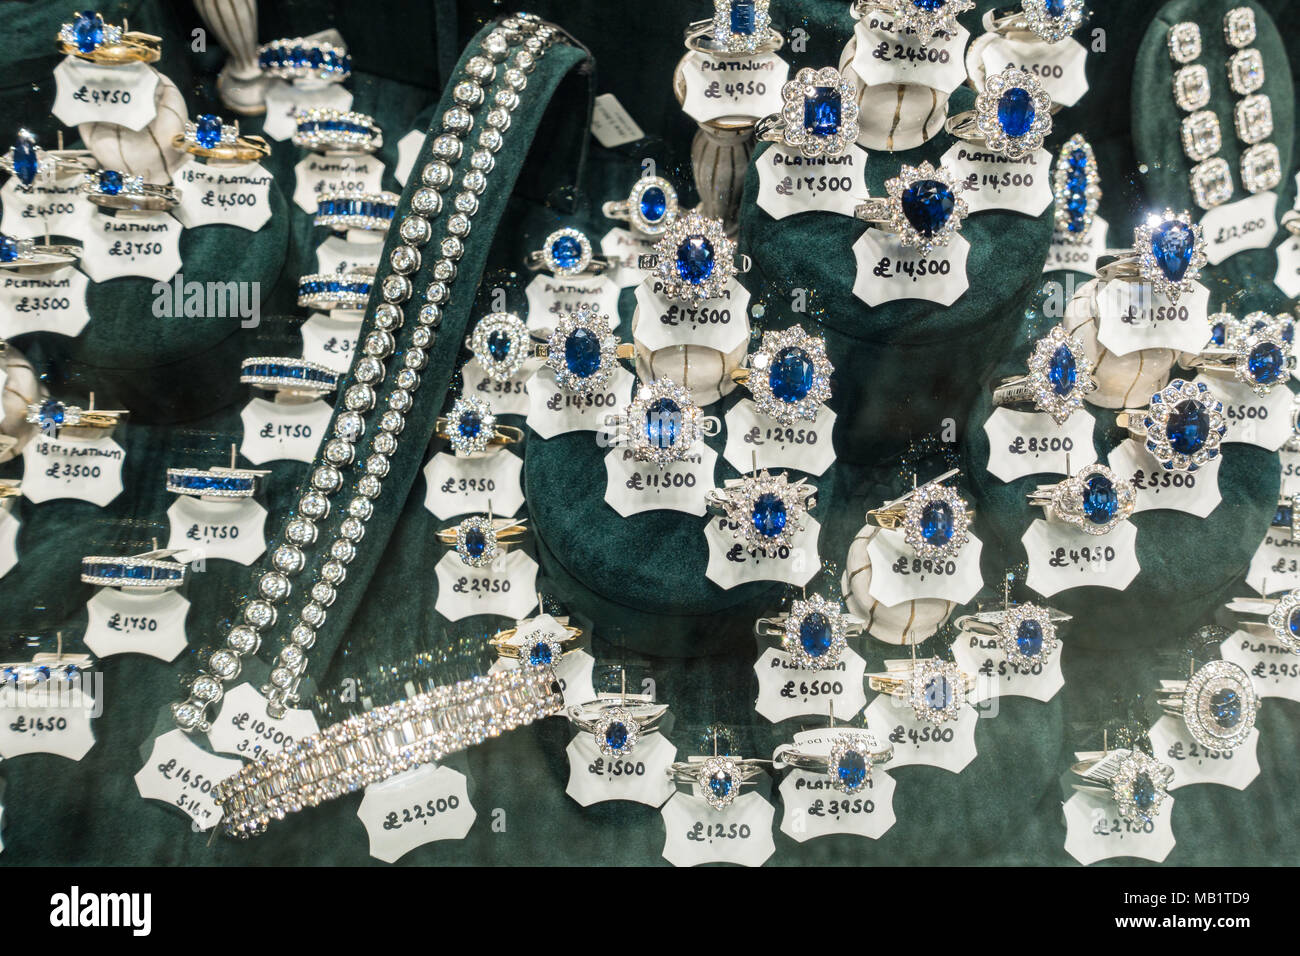 Diamond and sapphire rings with price tags in shop window in Glasgow's Argyll Arcade, Scotland, UK - Stock Image